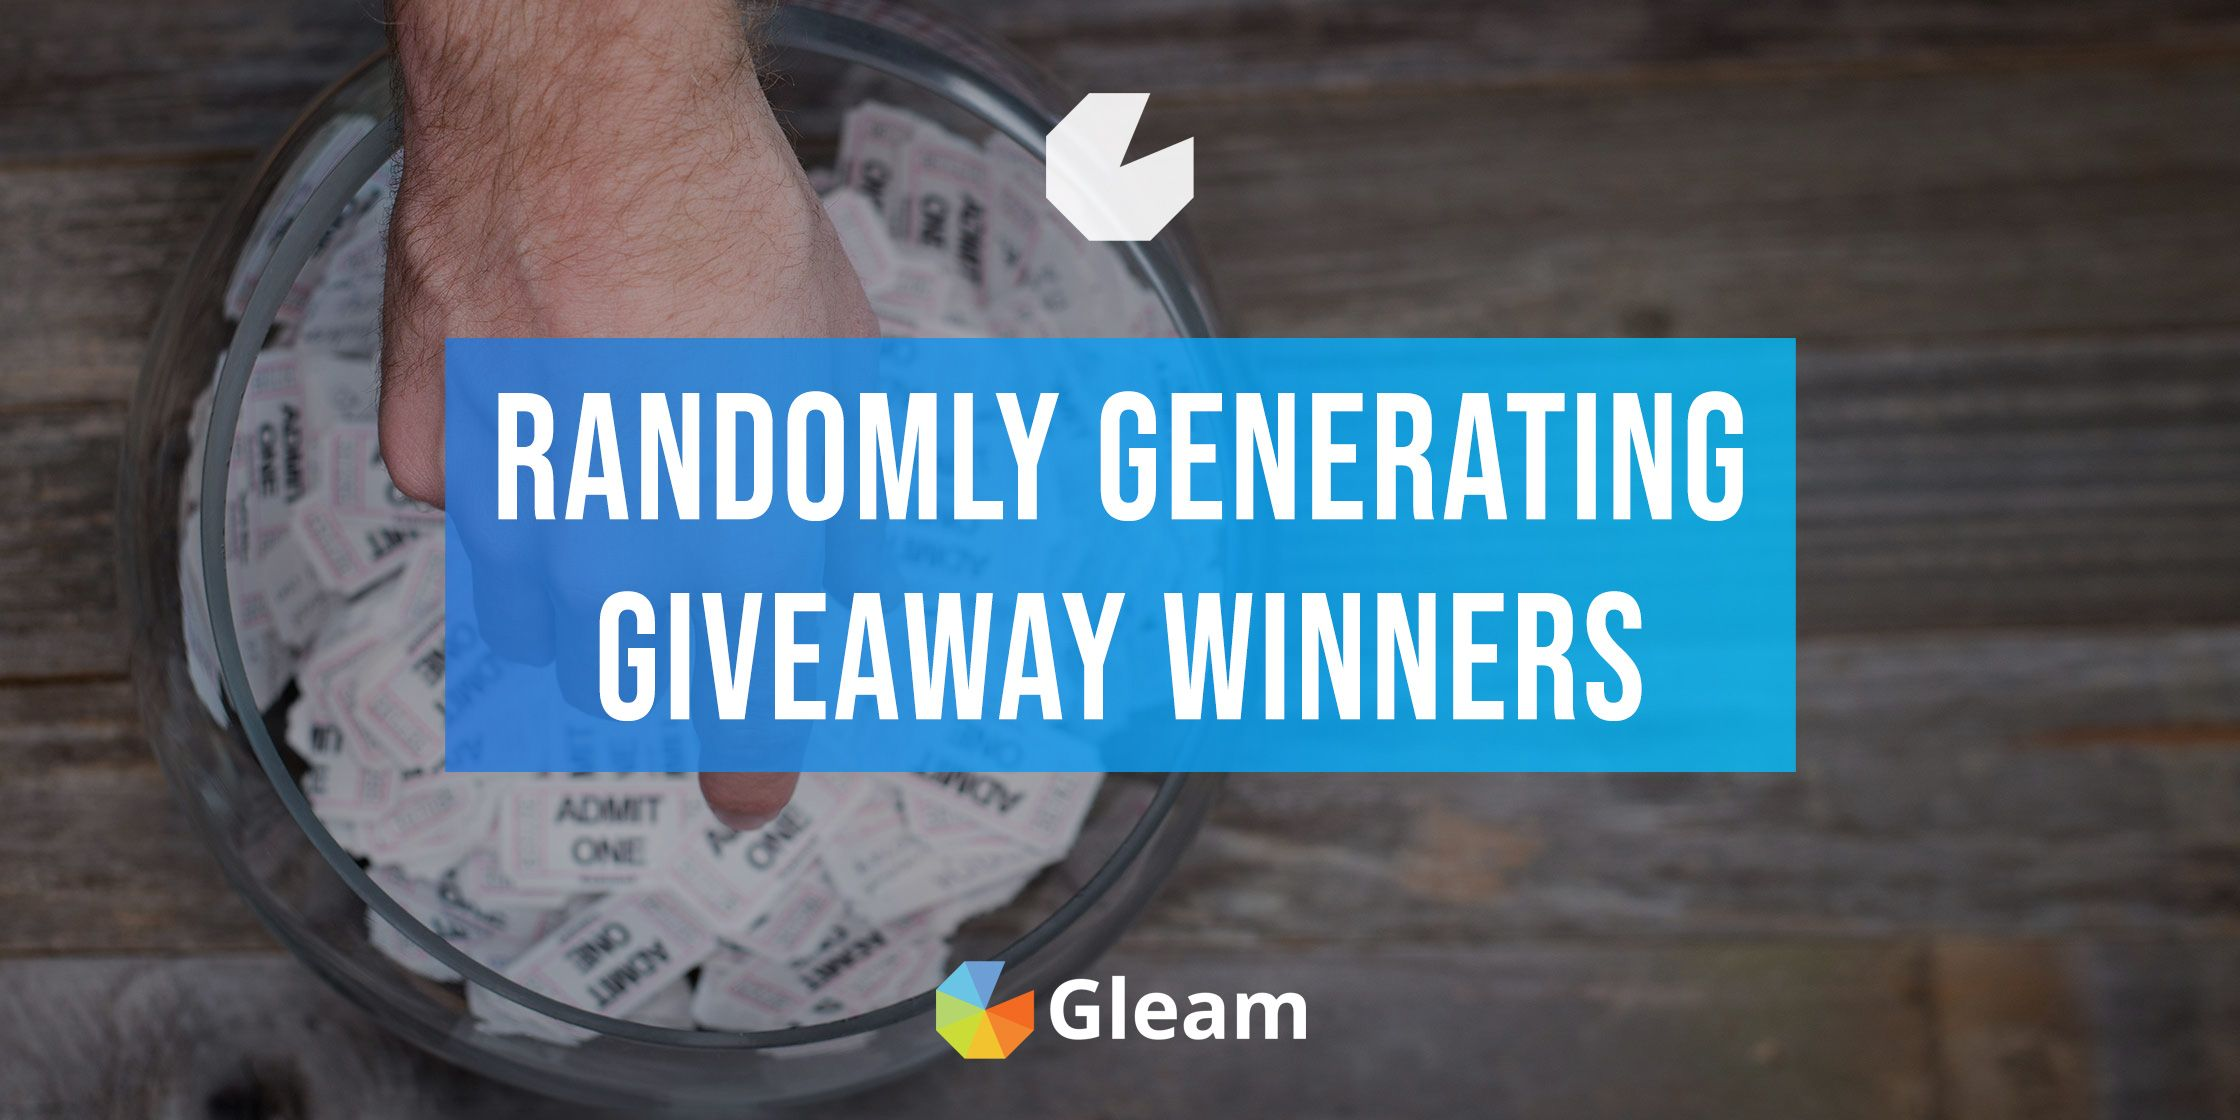 How To Randomly Generate Winners For Your Giveaway